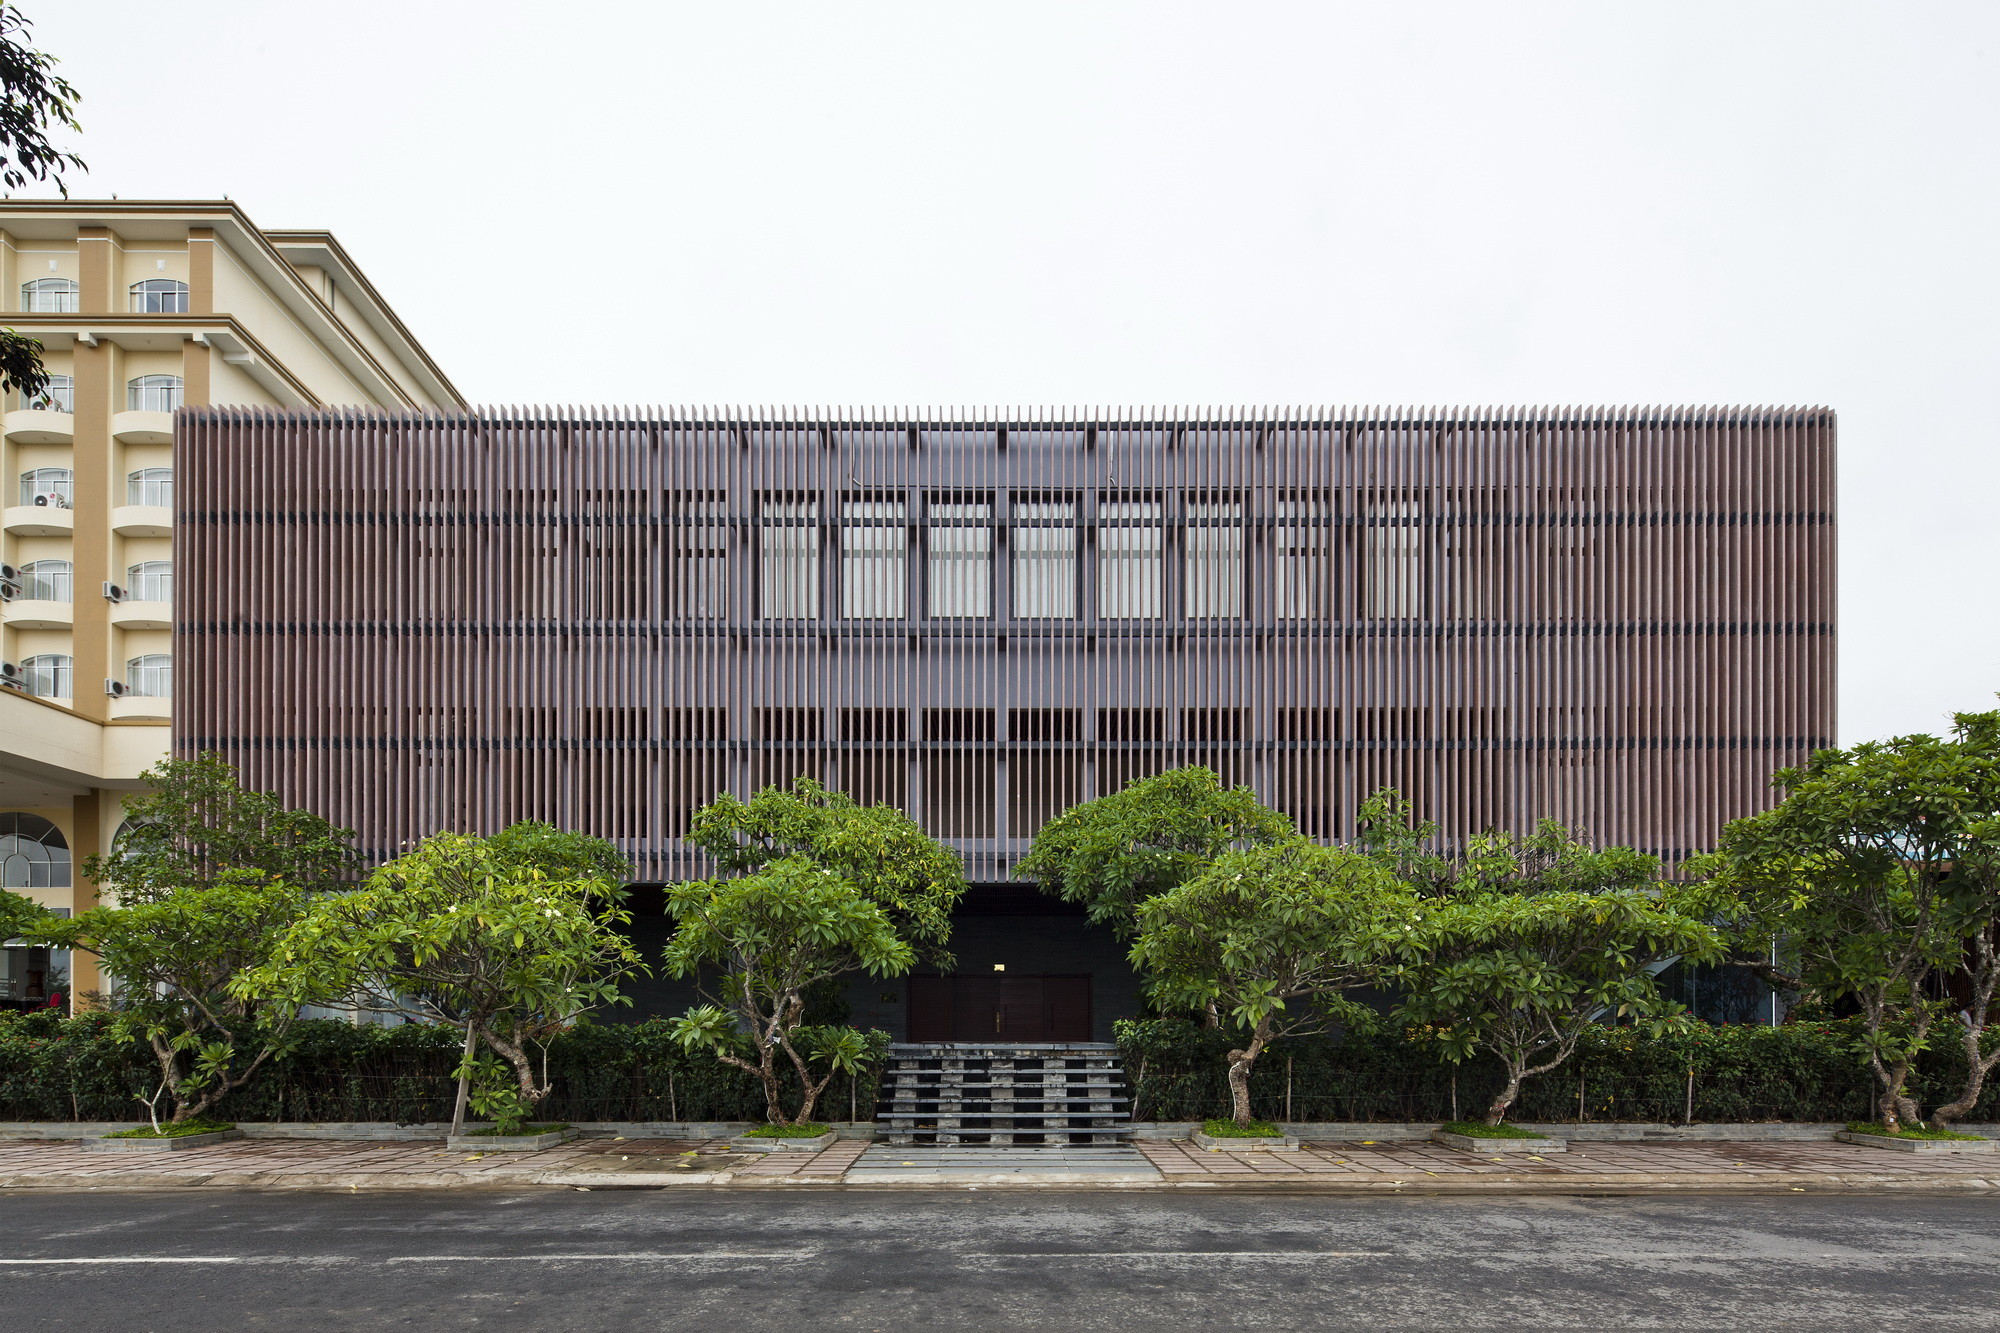 Kontum Indochine Wedding Hall / Vo Trong Nghia Architects, © Hiroyuki Oki